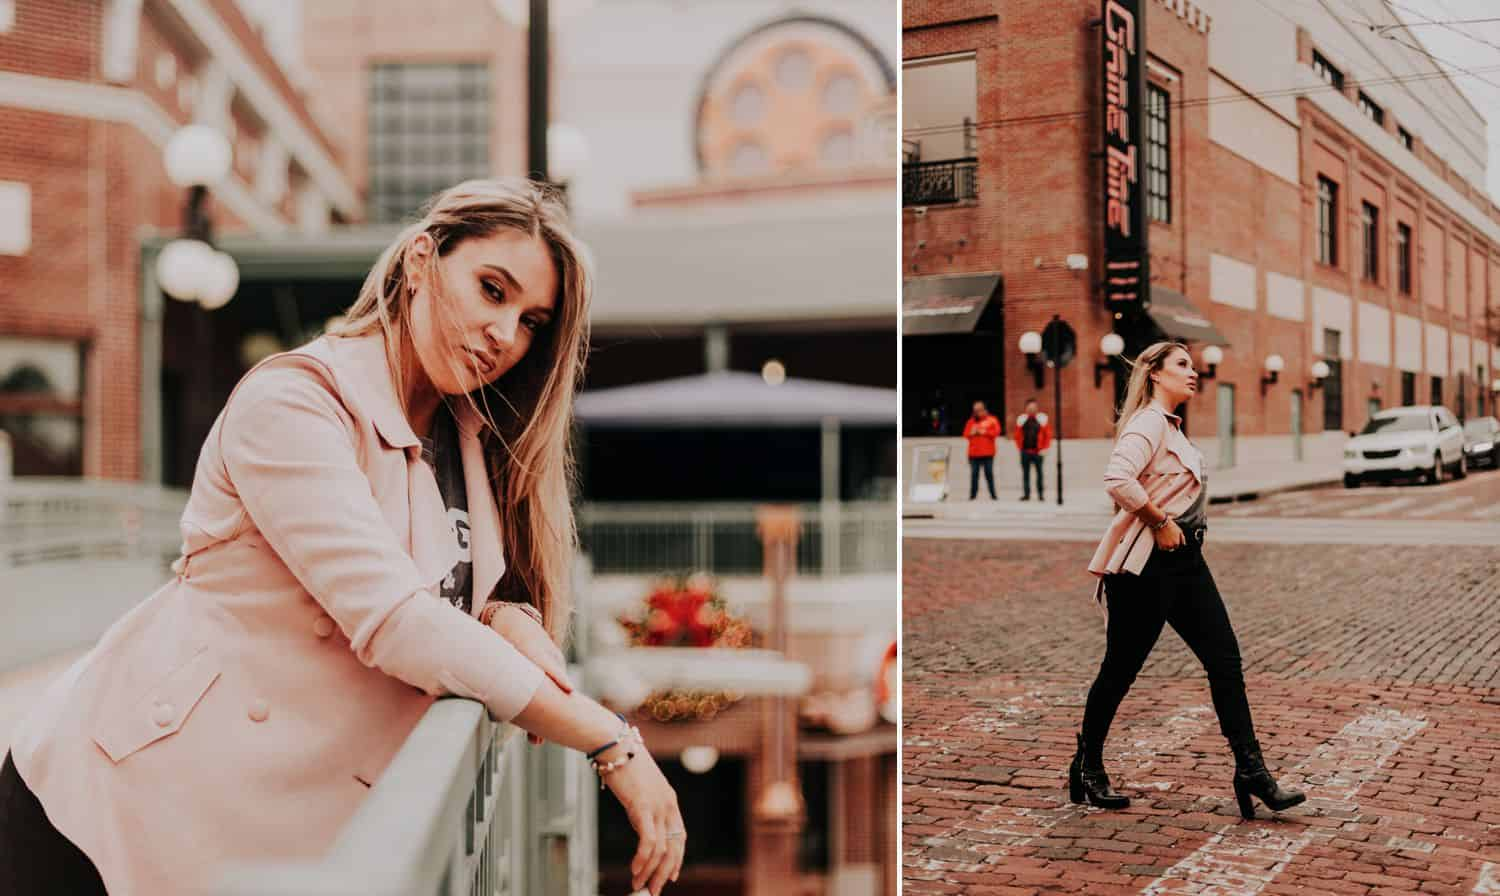 Are you juggling school and a photography business? See how one full-time student uses ShootProof to keep her work – and life – beautifully balanced.